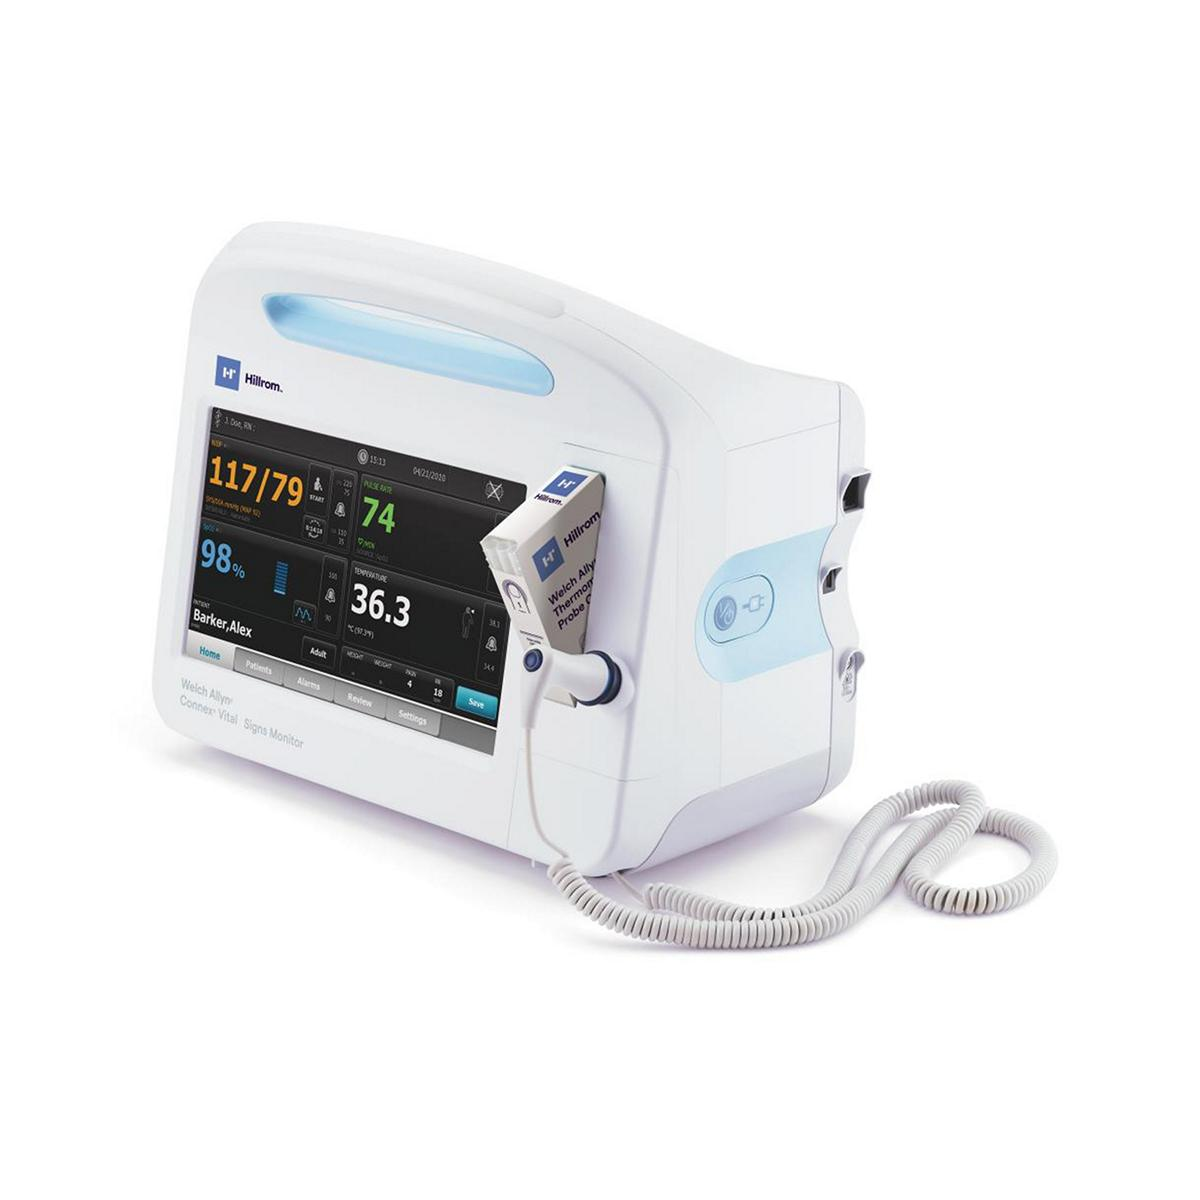 The Welch Allyn® Connex® Vital Signs Monitor is facing left, featuring a screen with a full set of patient vitals.